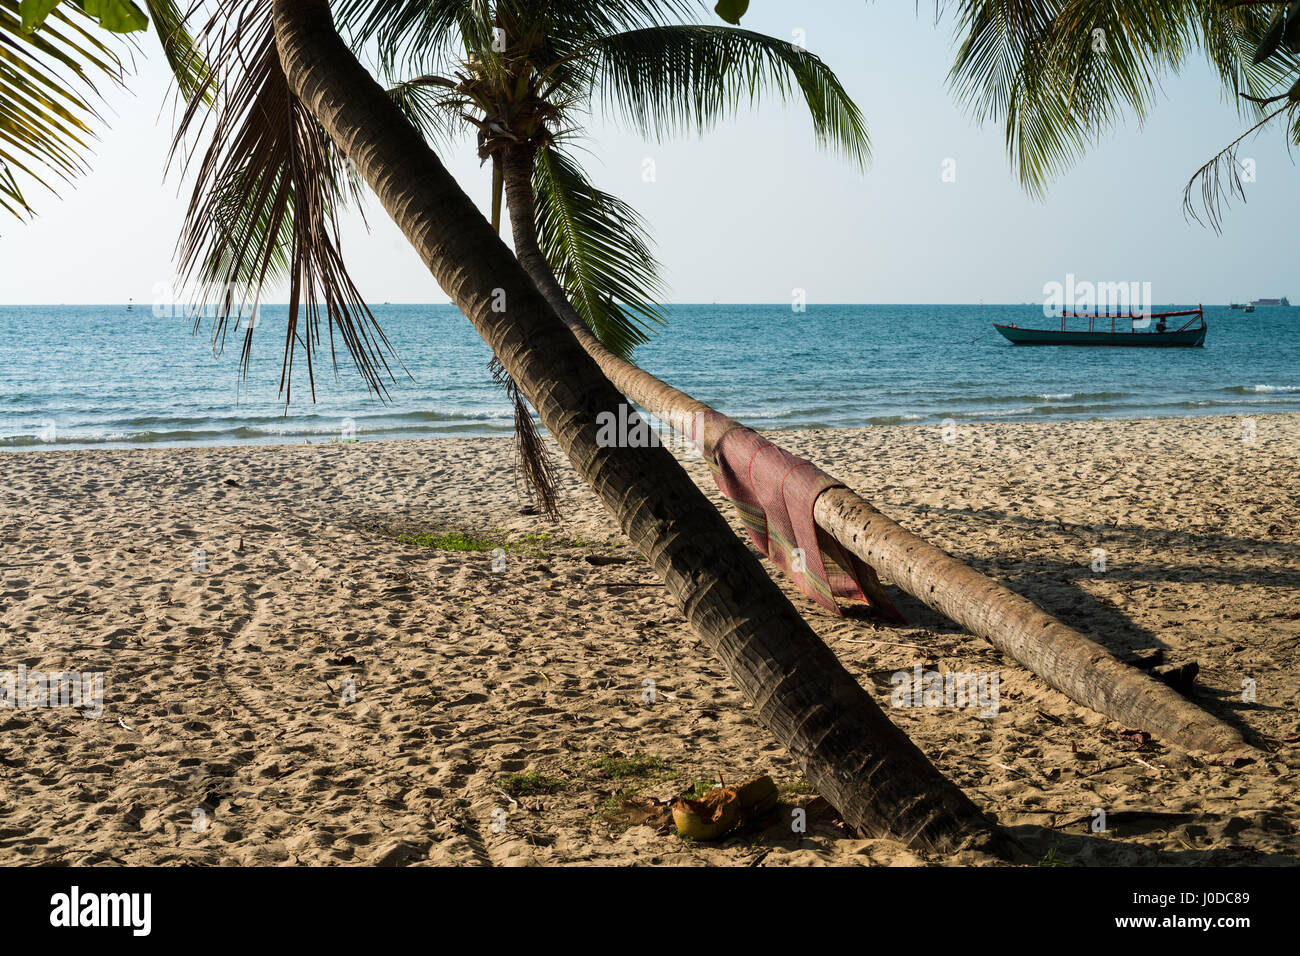 Hawaii Beach in the Sihanouk , Cambodia, Asia. Stock Photo